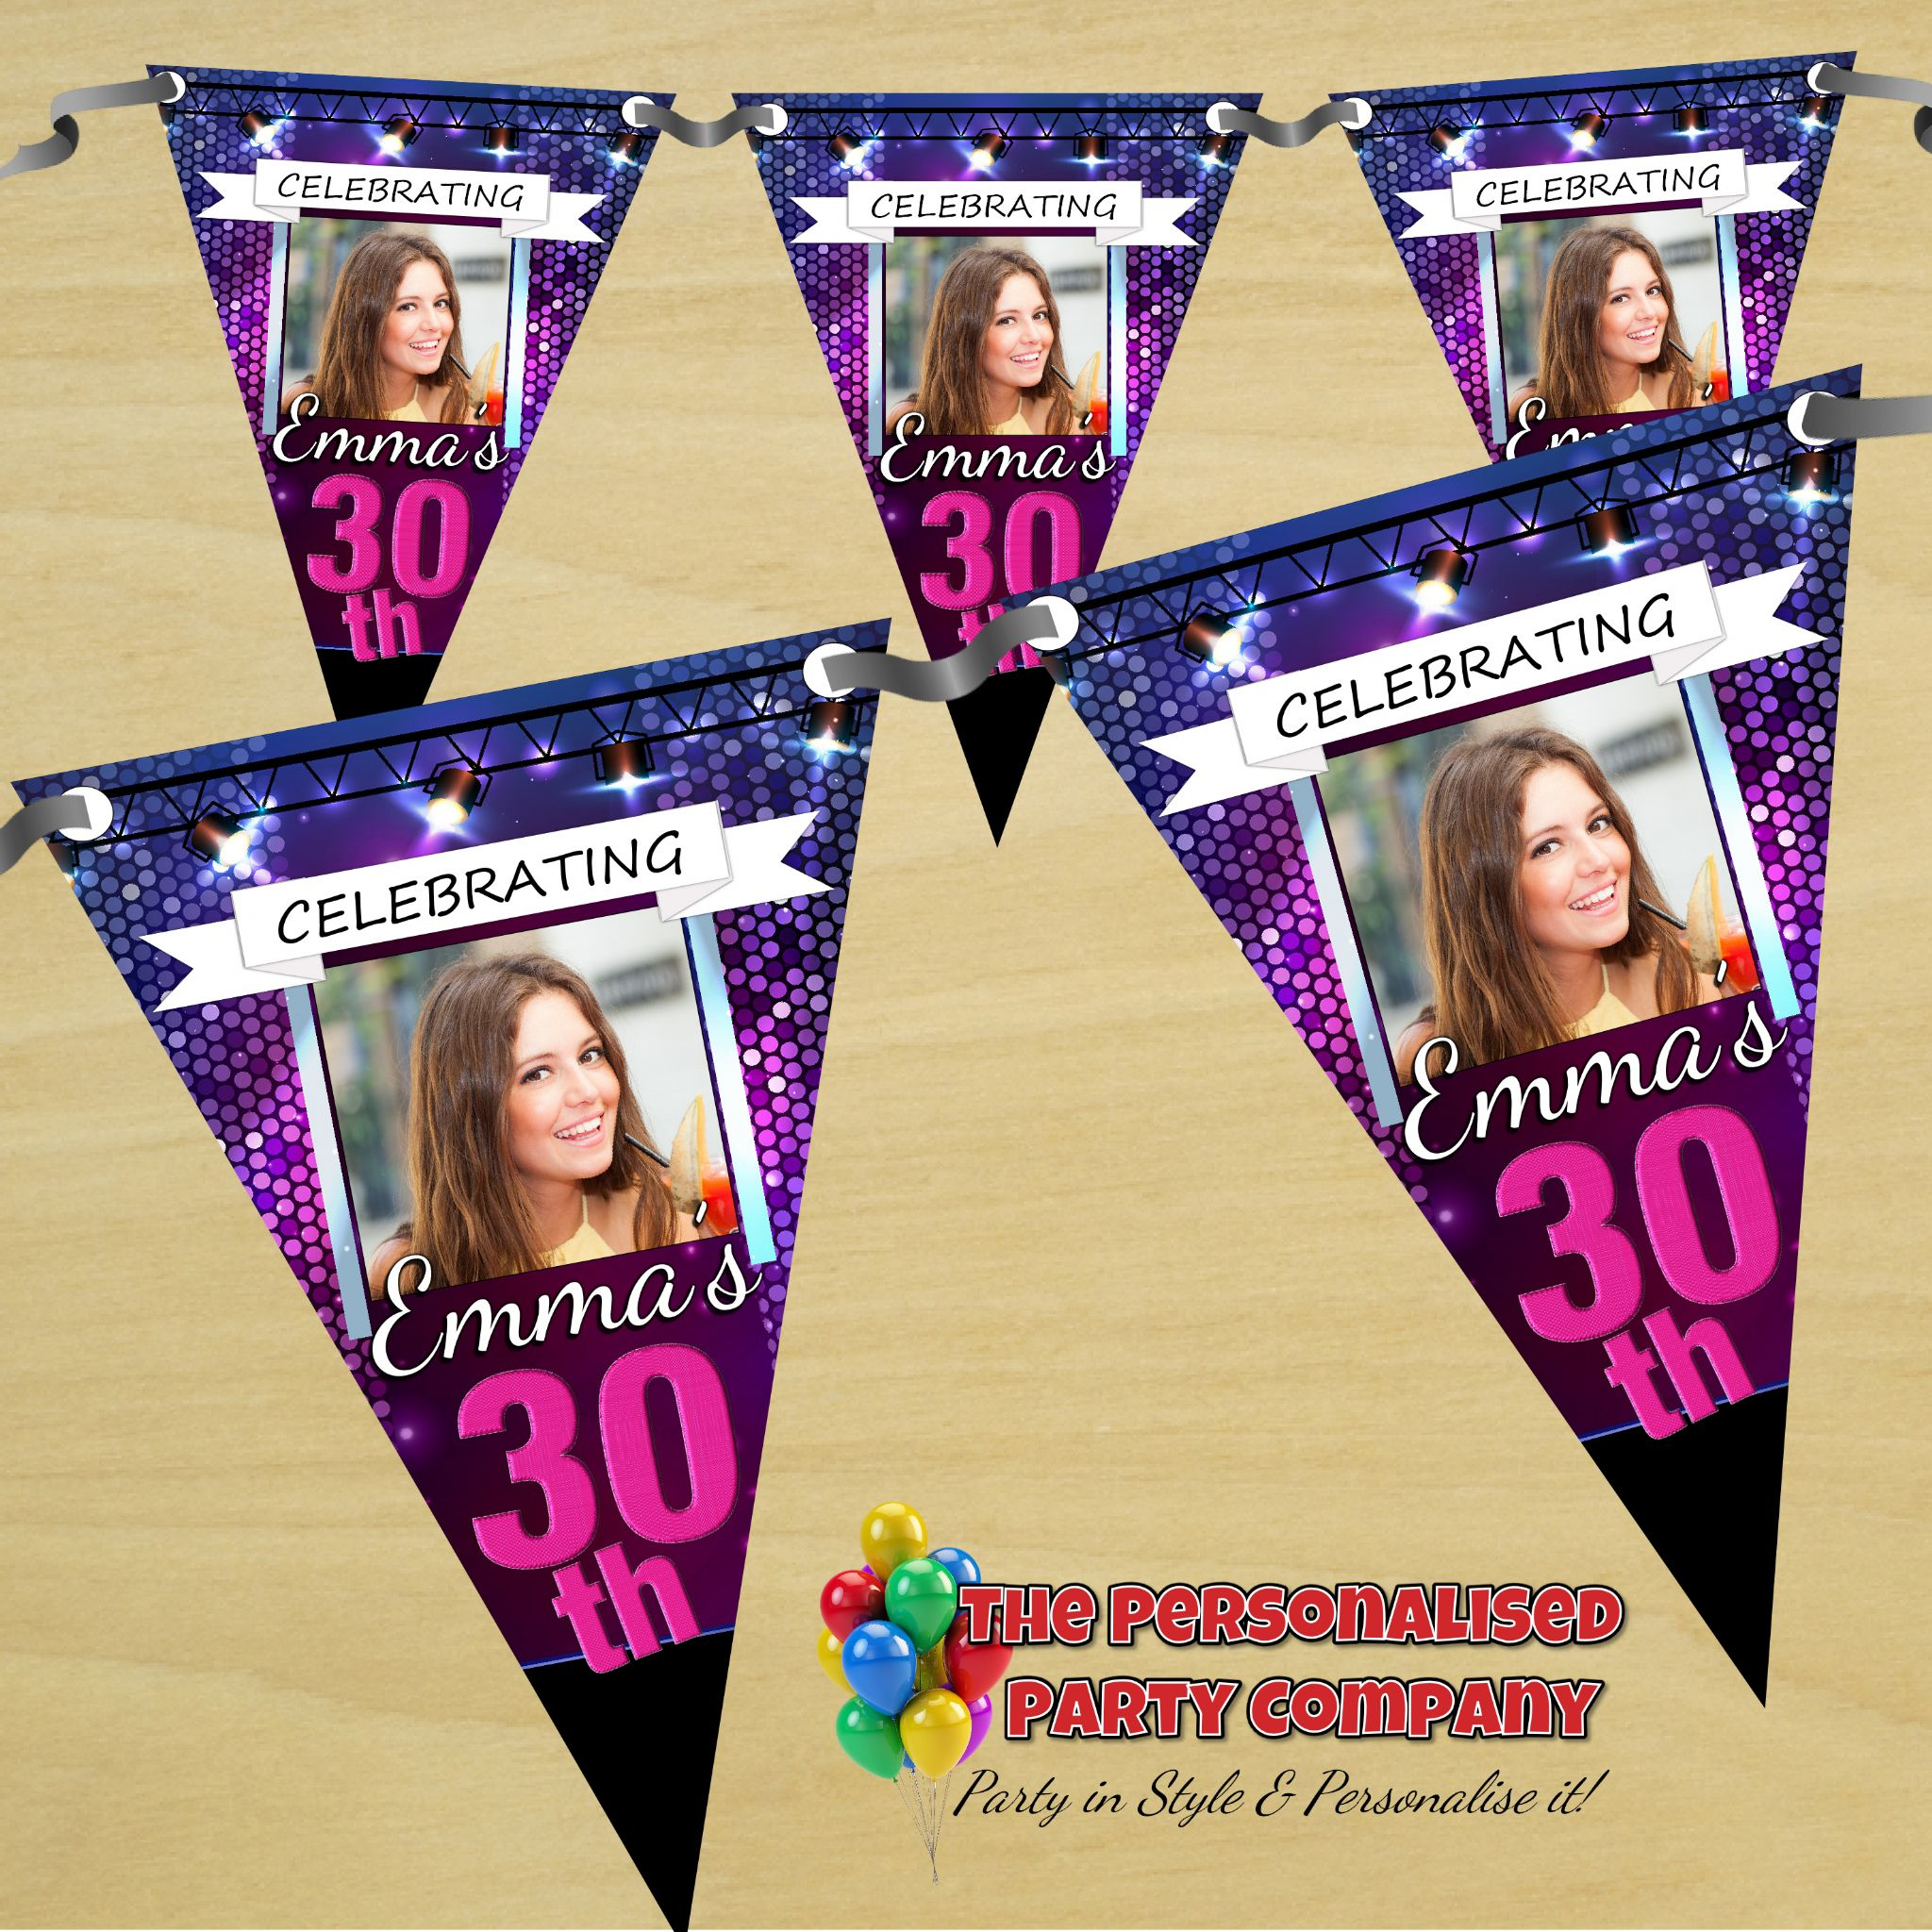 personalised photo birthday banners ; personalised-happy-birthday-flag-photo-bunting-banner-n49-disco-bokeh-number-of-flags-30-flags-print-option-one-sided-14292-p